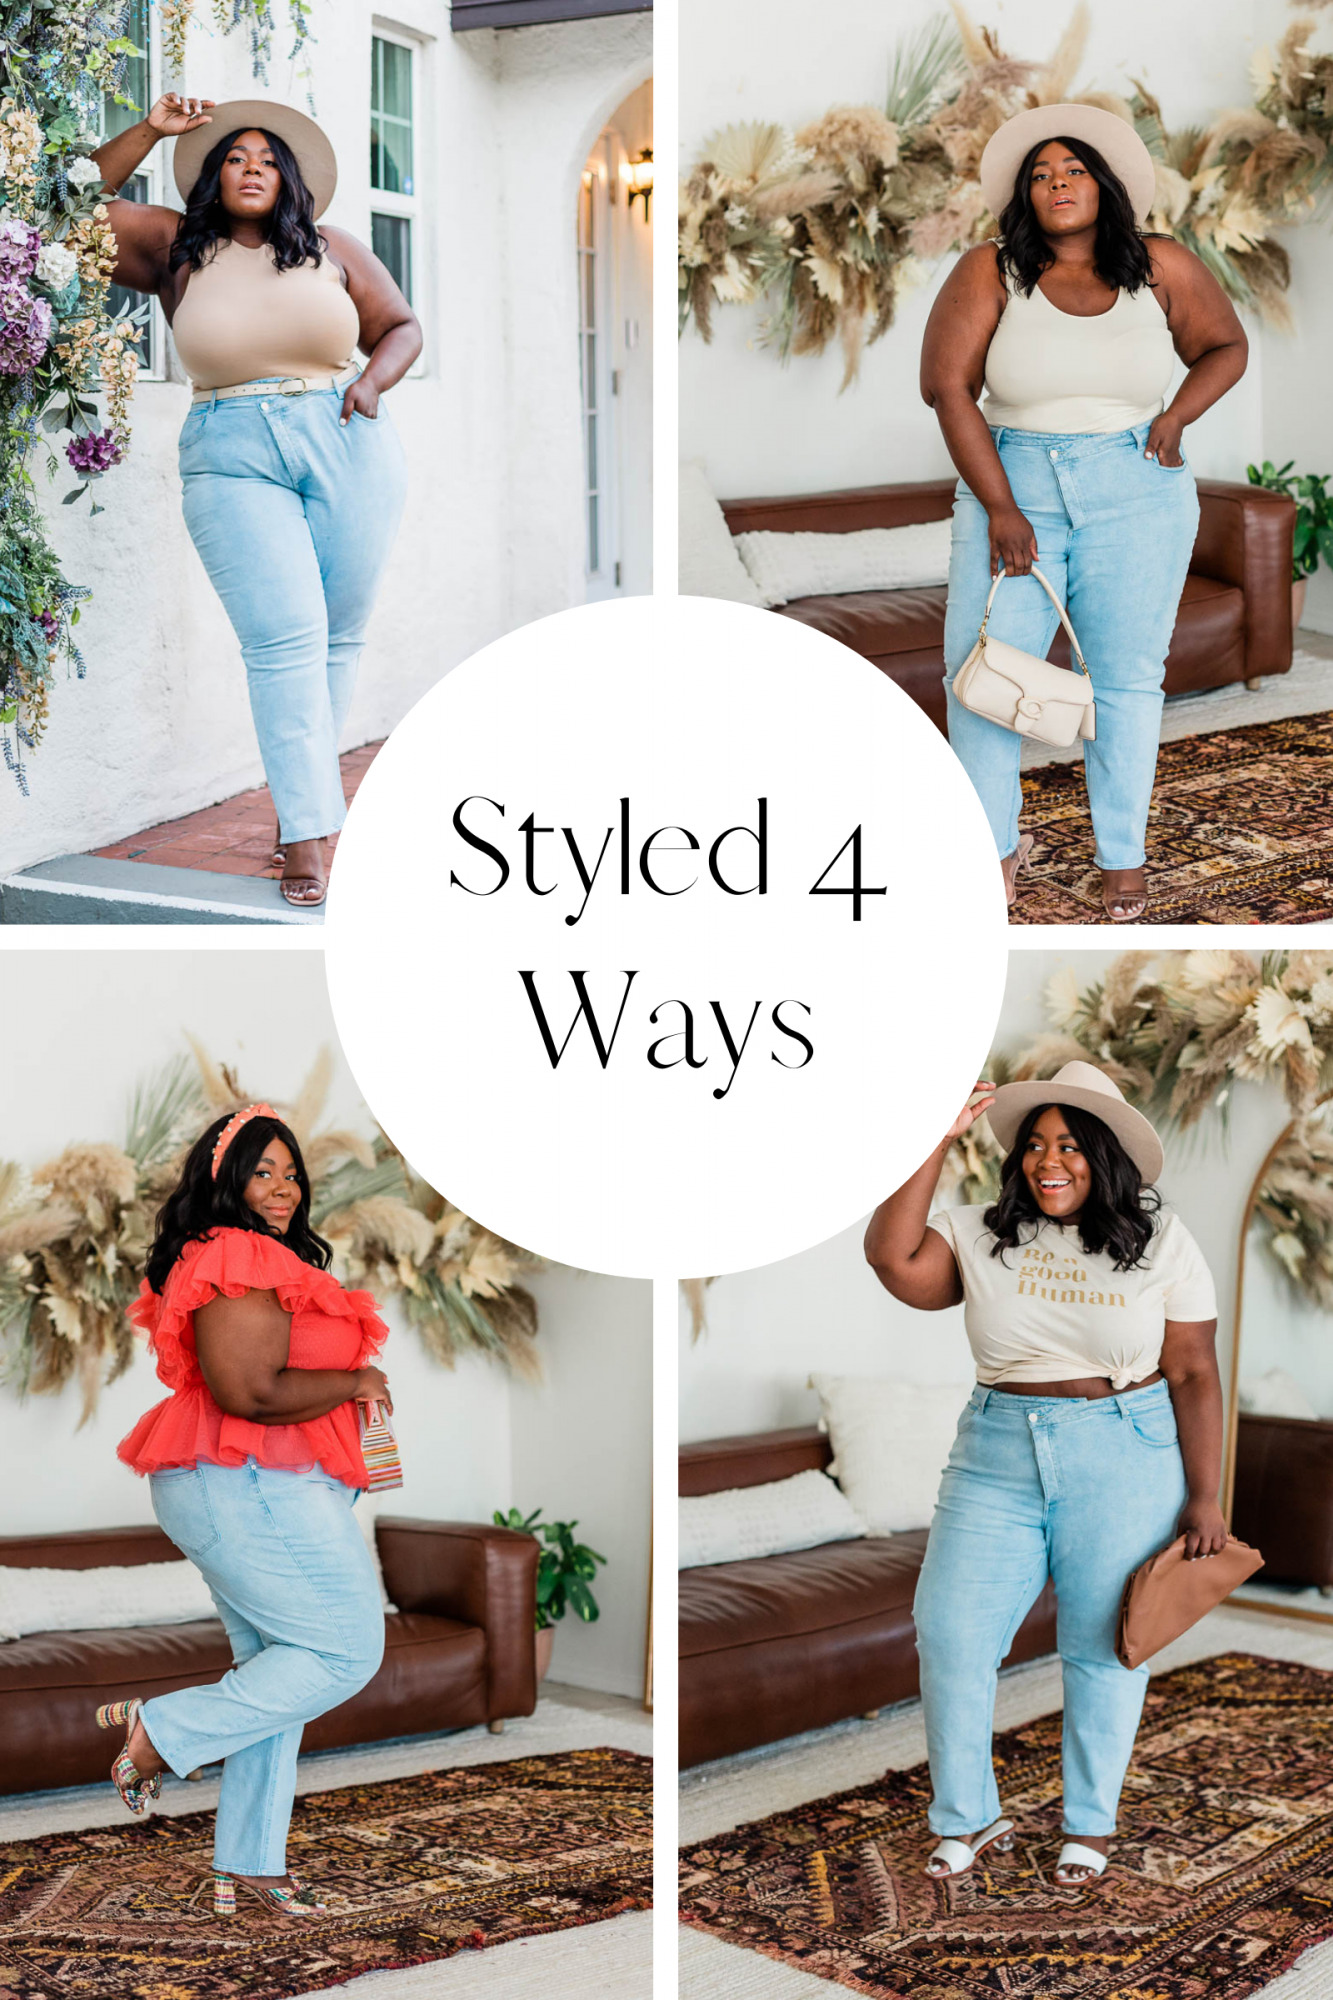 Anthropologie, Walmart, Plus Size Straight Leg Jeans, Forever 21, Plus Size Jeans, Styled 4 Ways